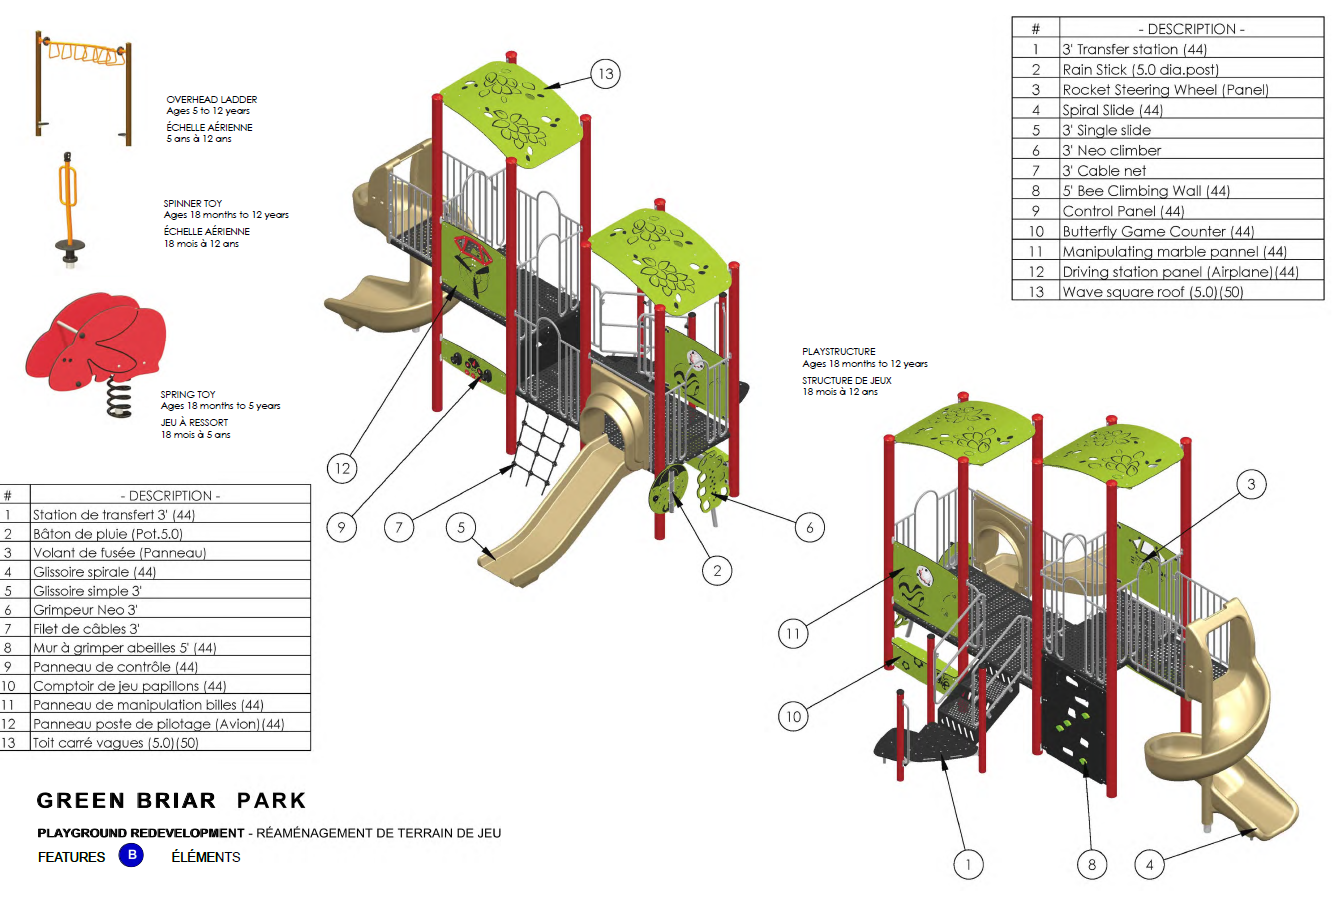 Conceptual image showing the playground redevelopment in Green Briar Park, indicating the following: Playstructure (Ages 18 months to 12 years); a Spring Toy; an Overhead Ladder; A Spinner Toy; and Swings shown in red and black including one accessible seat, one infant seat and two belt seats.